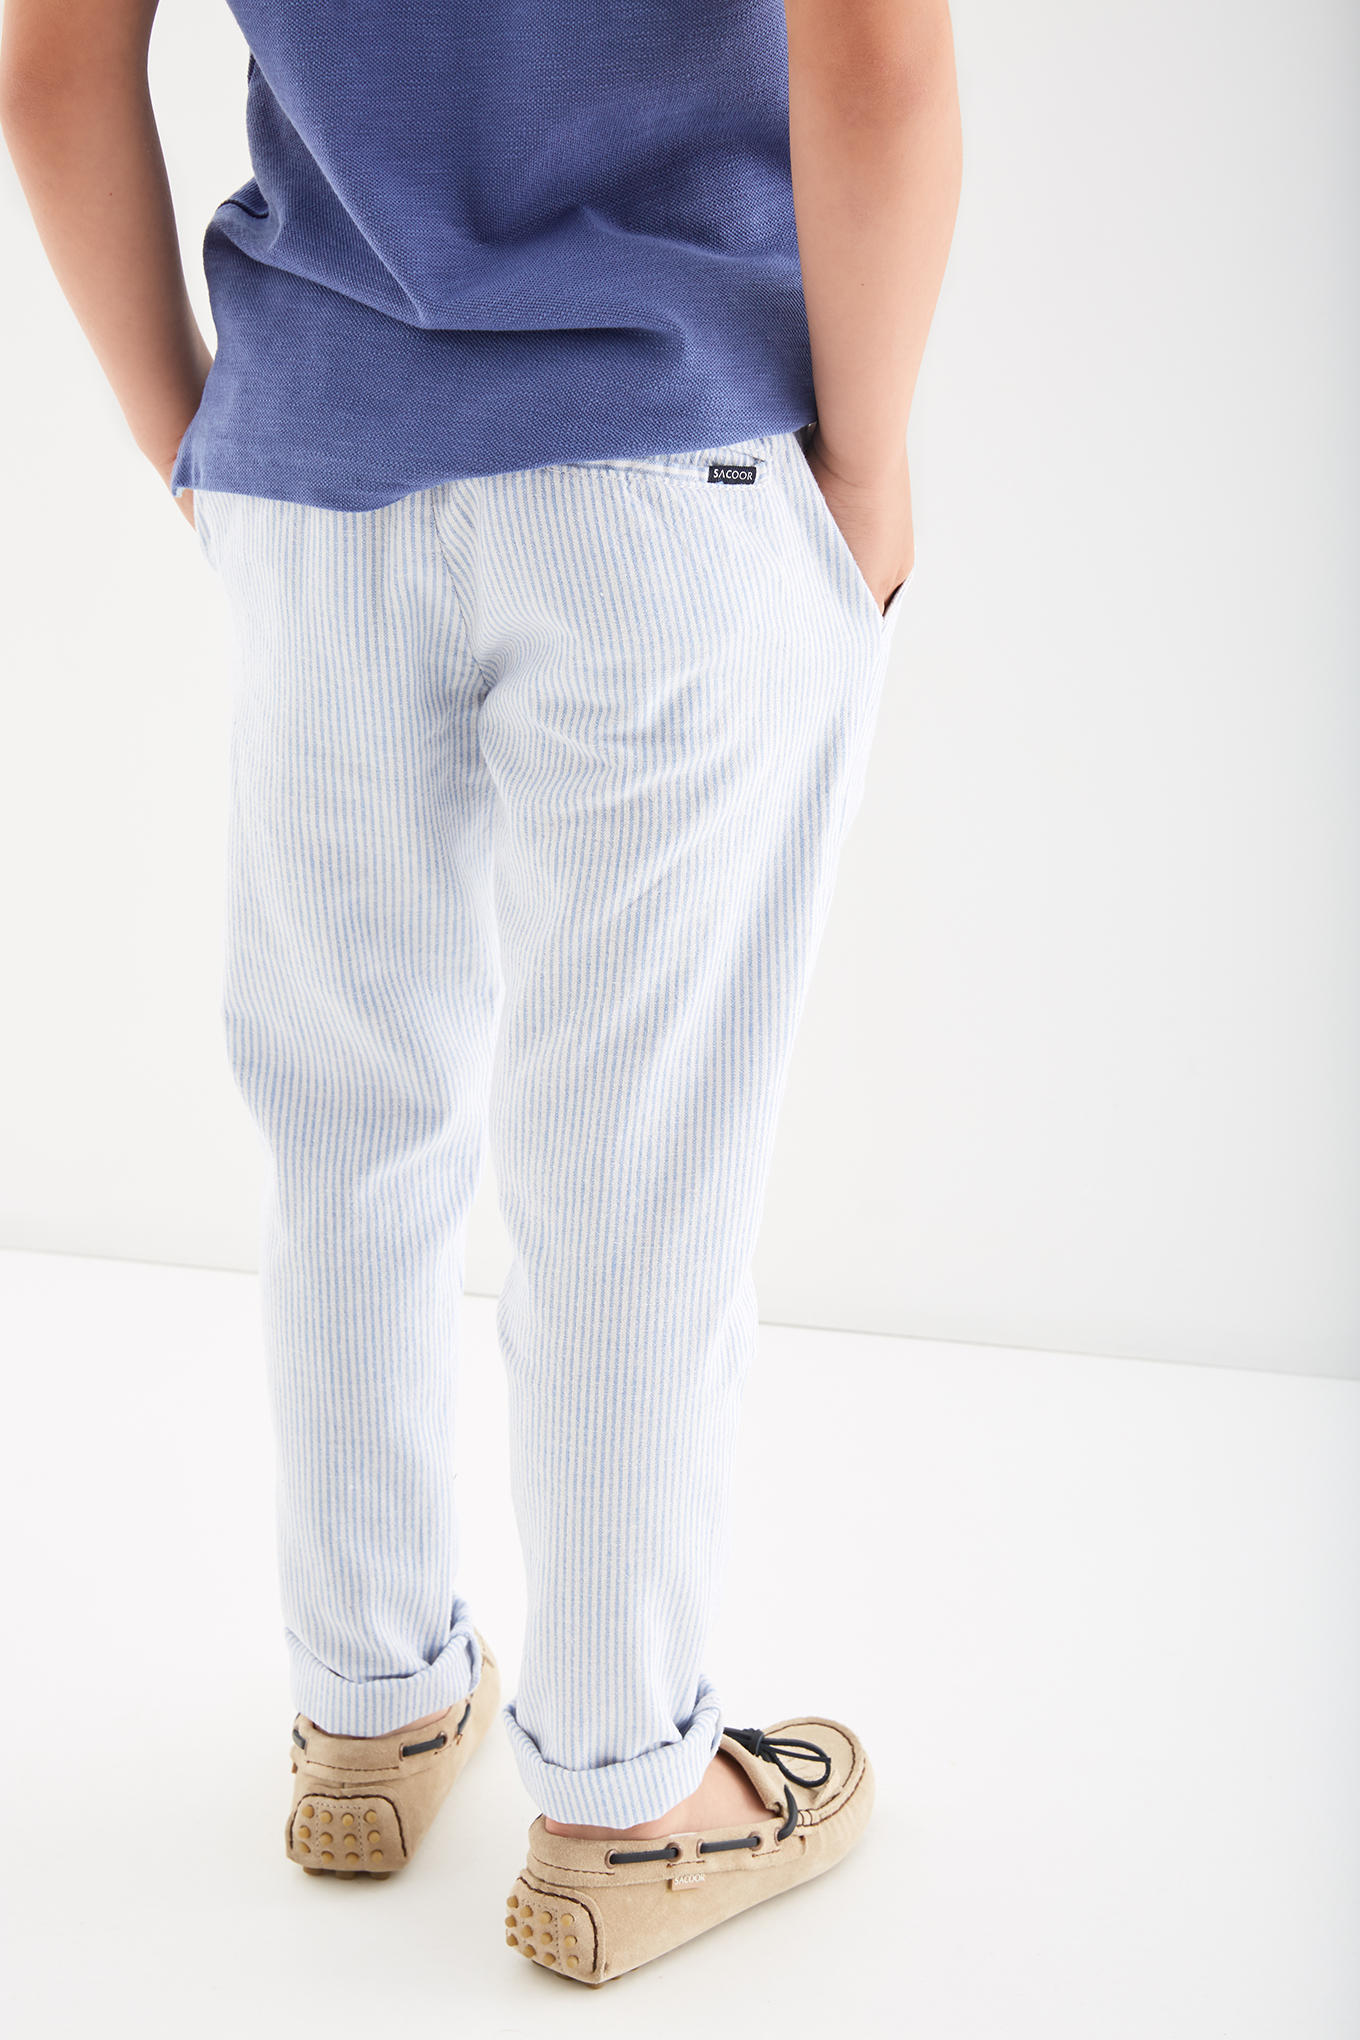 Chino Trousers Stripes Casual Boy